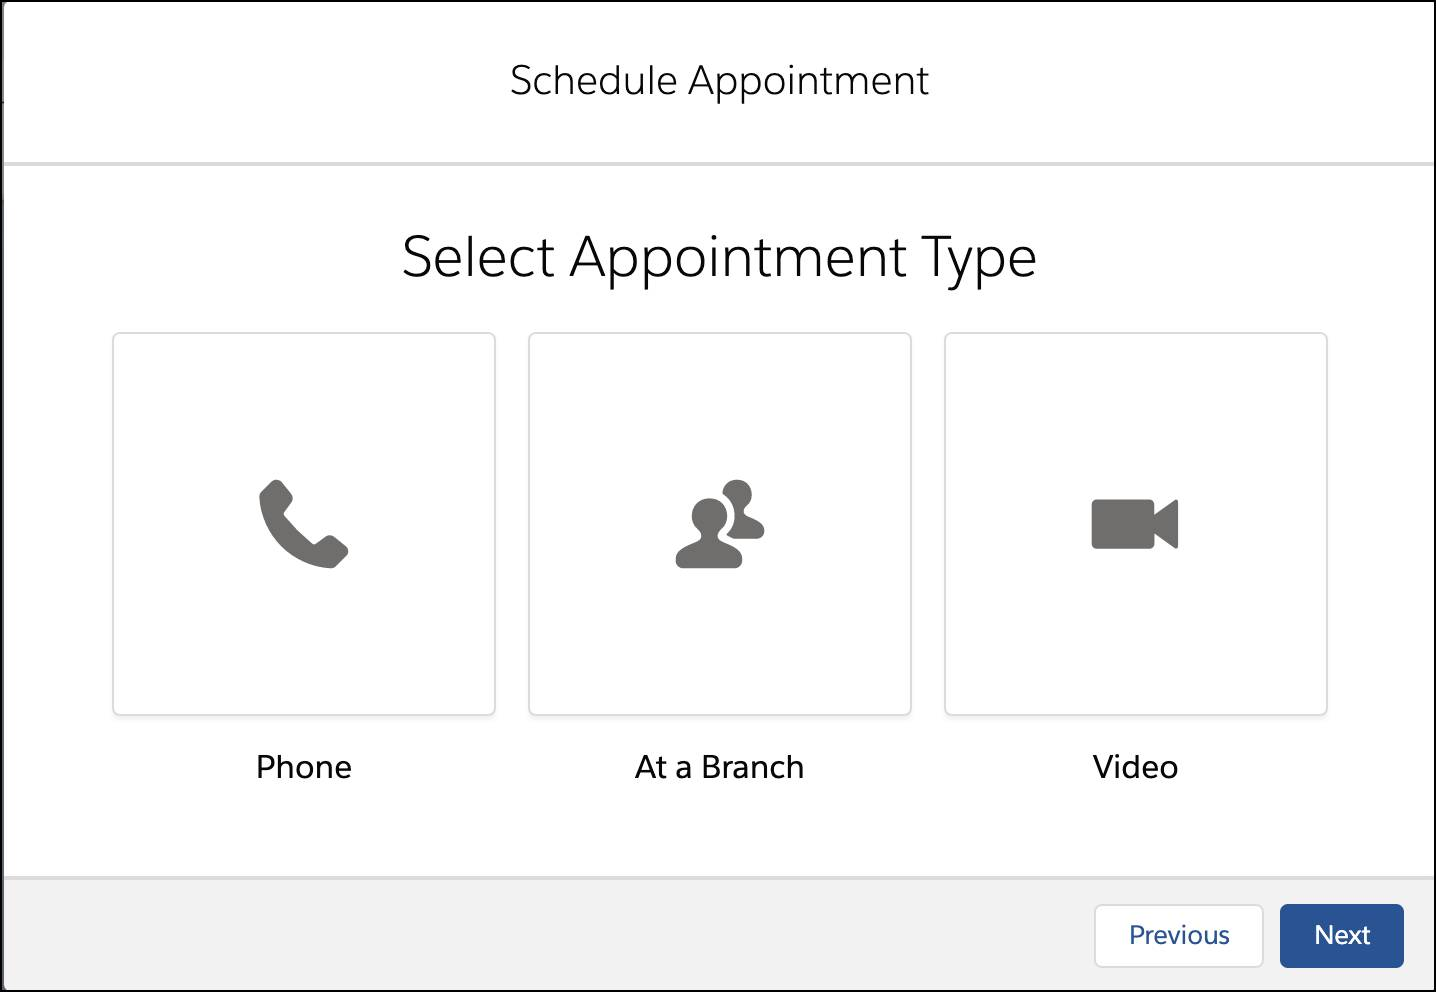 The Select Appointment Type window showing the appointment types available.